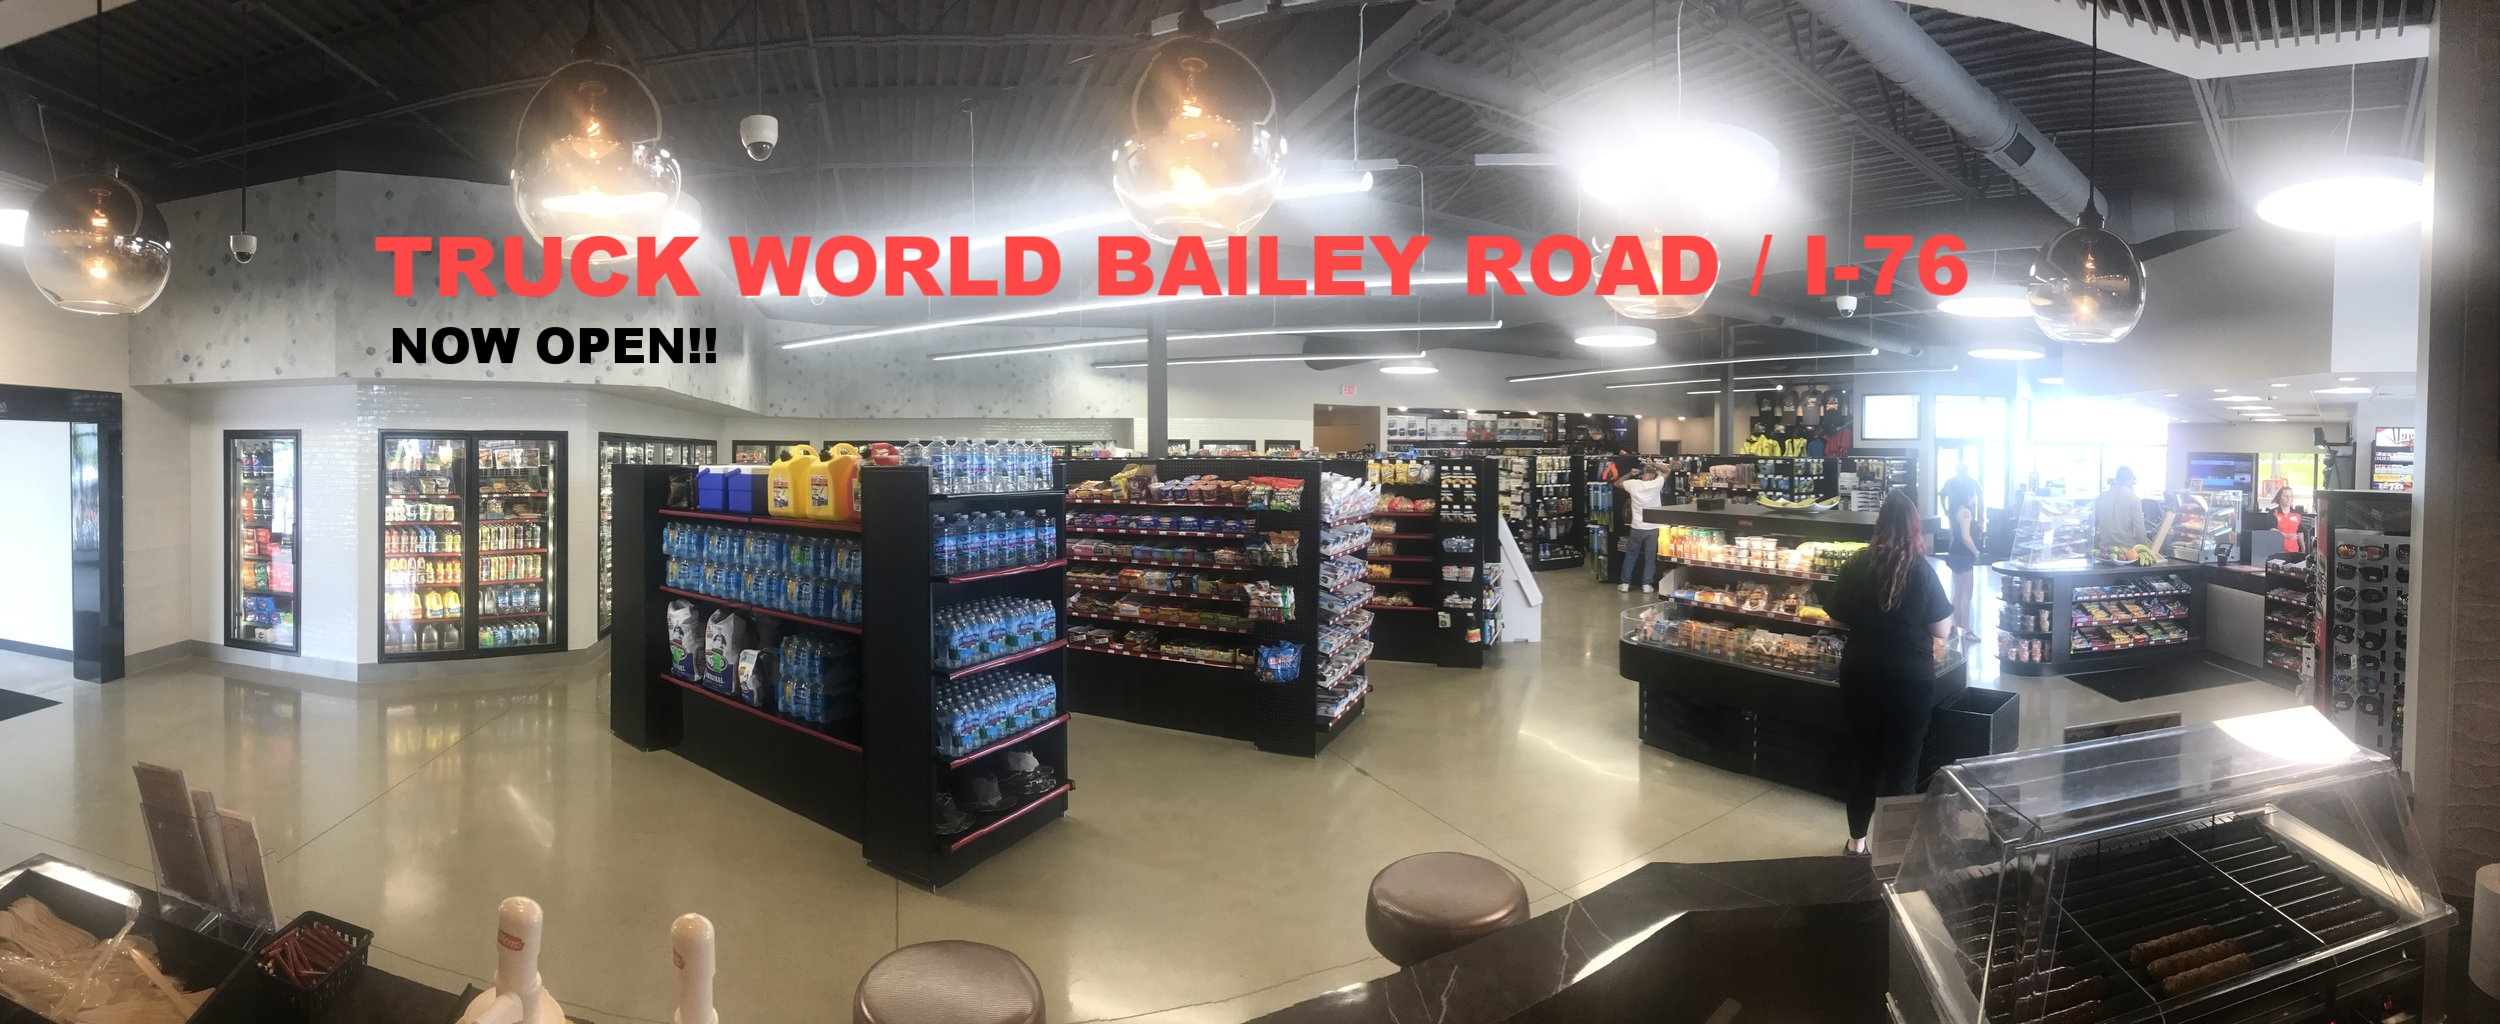 TRUCK WORLD BAILEY ROAD